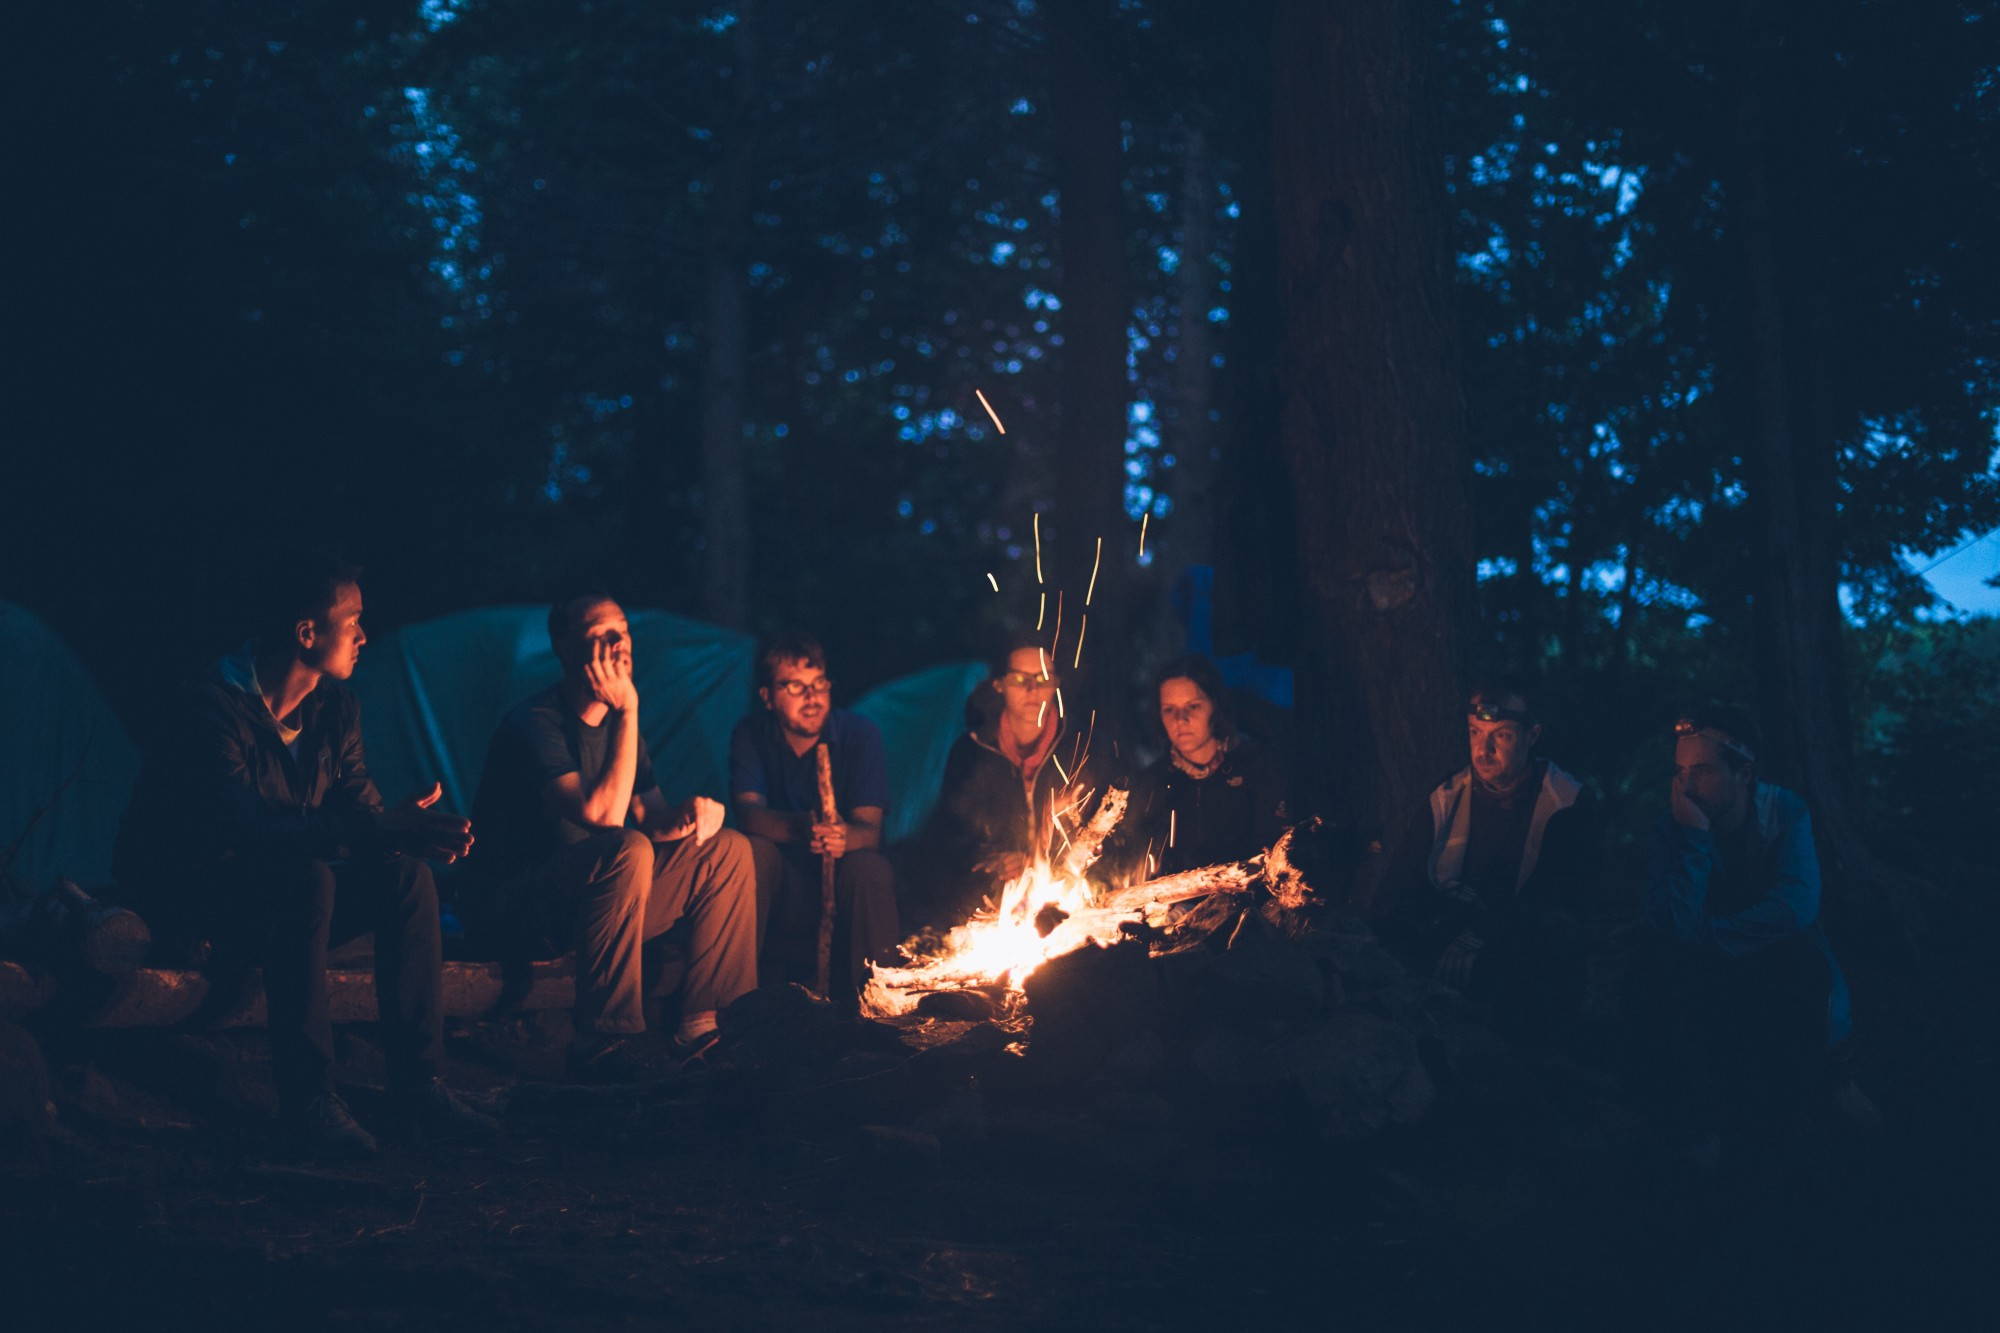 A group of people sitting at a campfire listening to stories